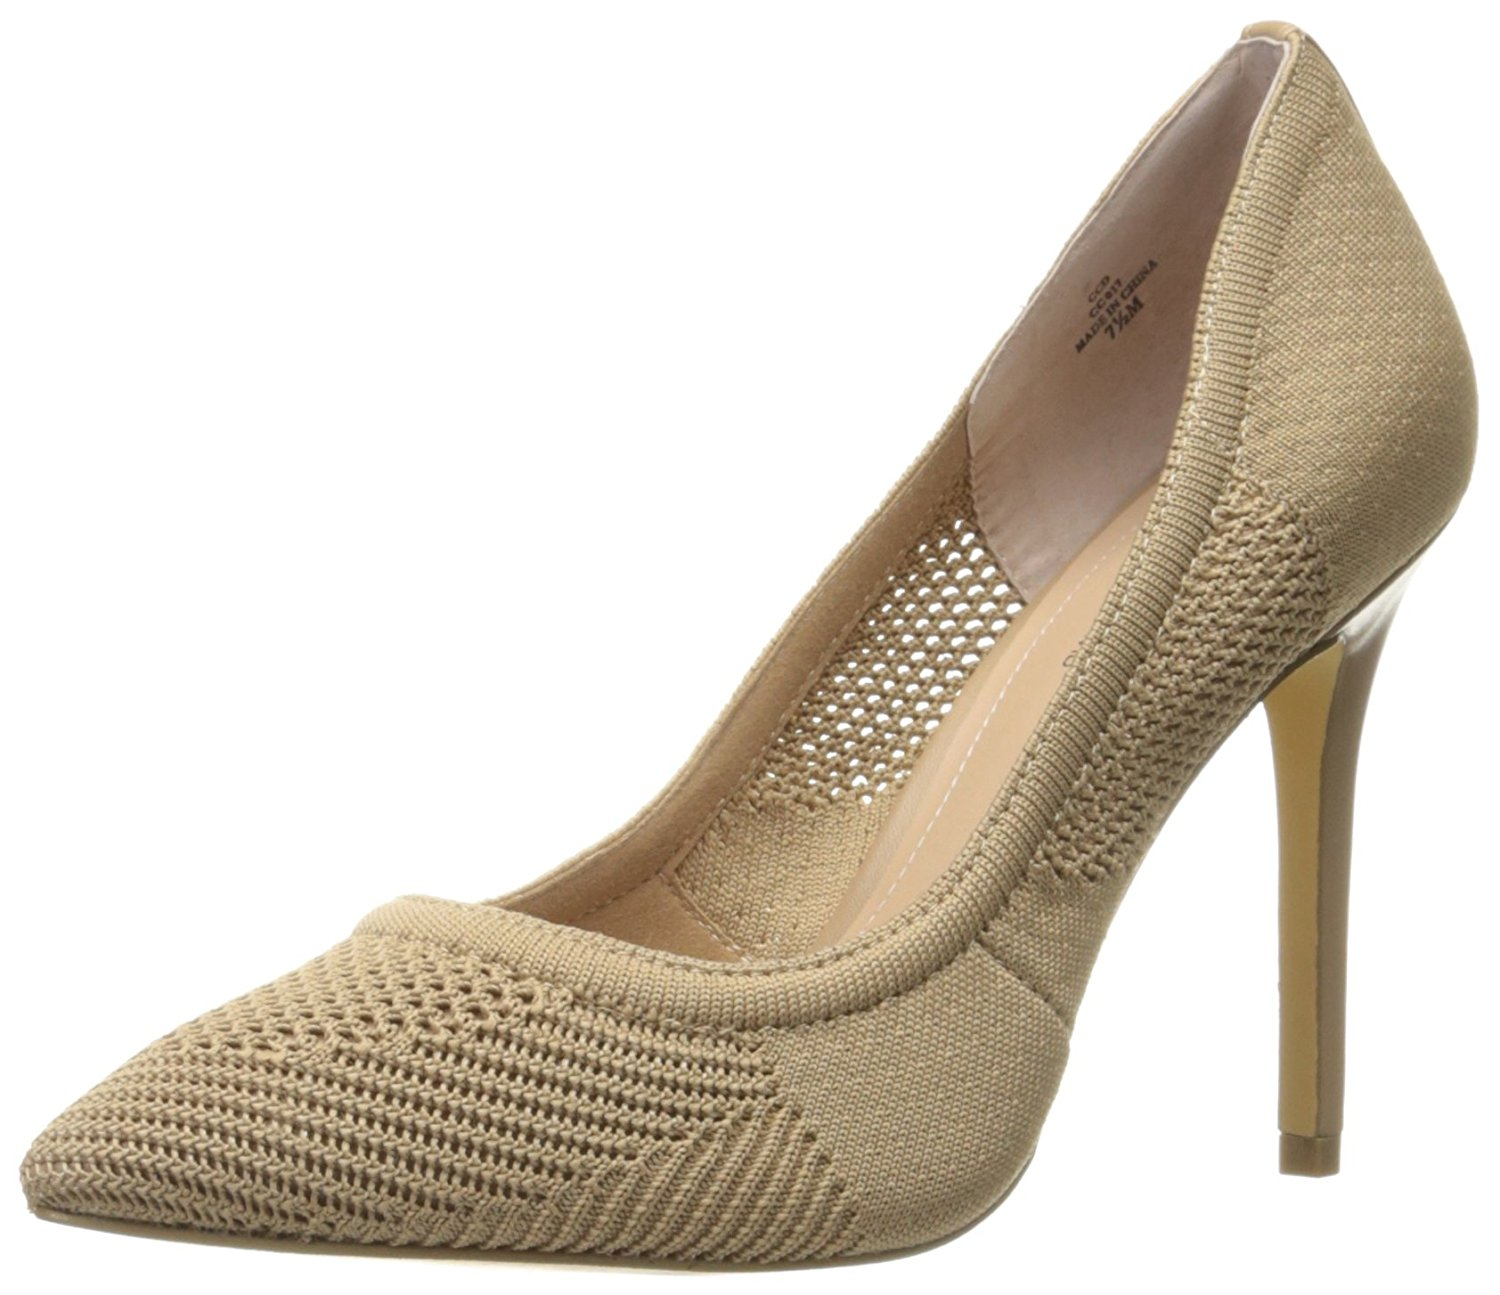 Charles by Charles David Womens CCDPACEY Fabric Pointed Toe Tan Size 11.0